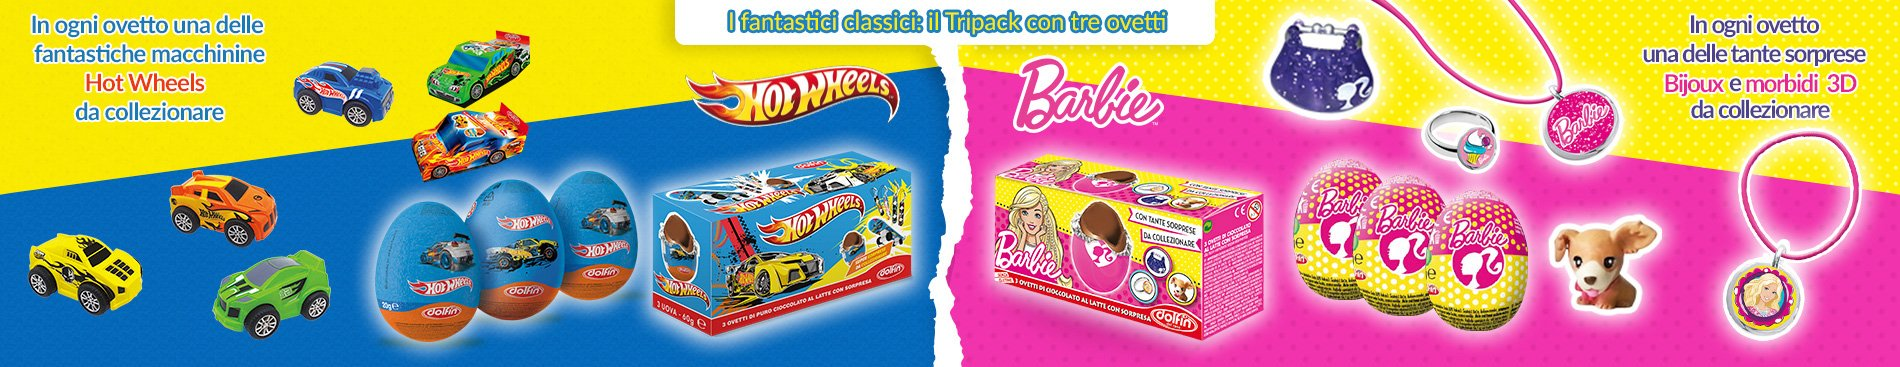 2019 Tripack HotWeels e Barbie